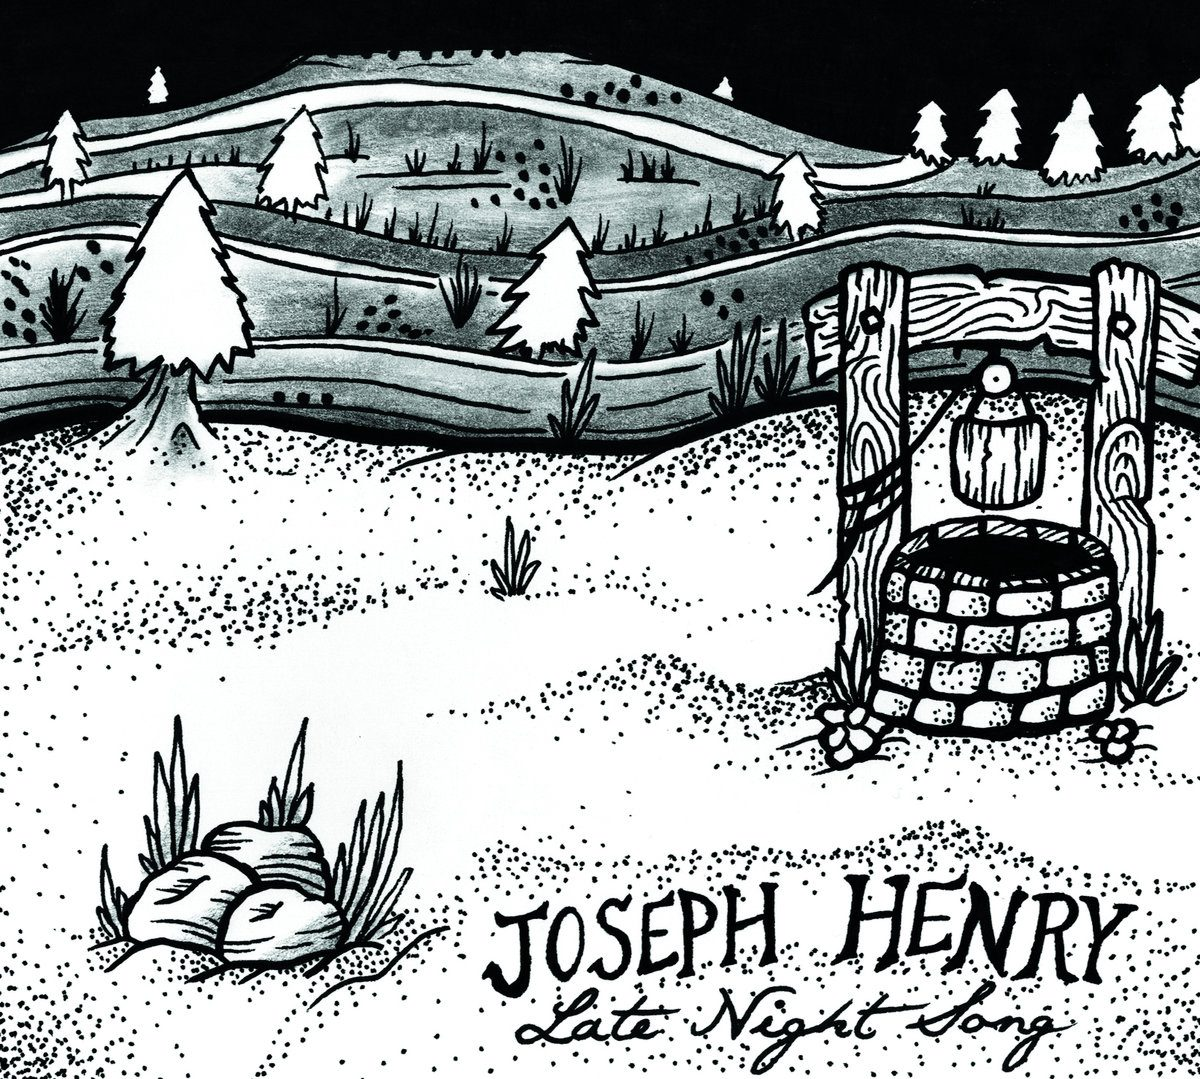 Joseph Henry Gives Us a Minute